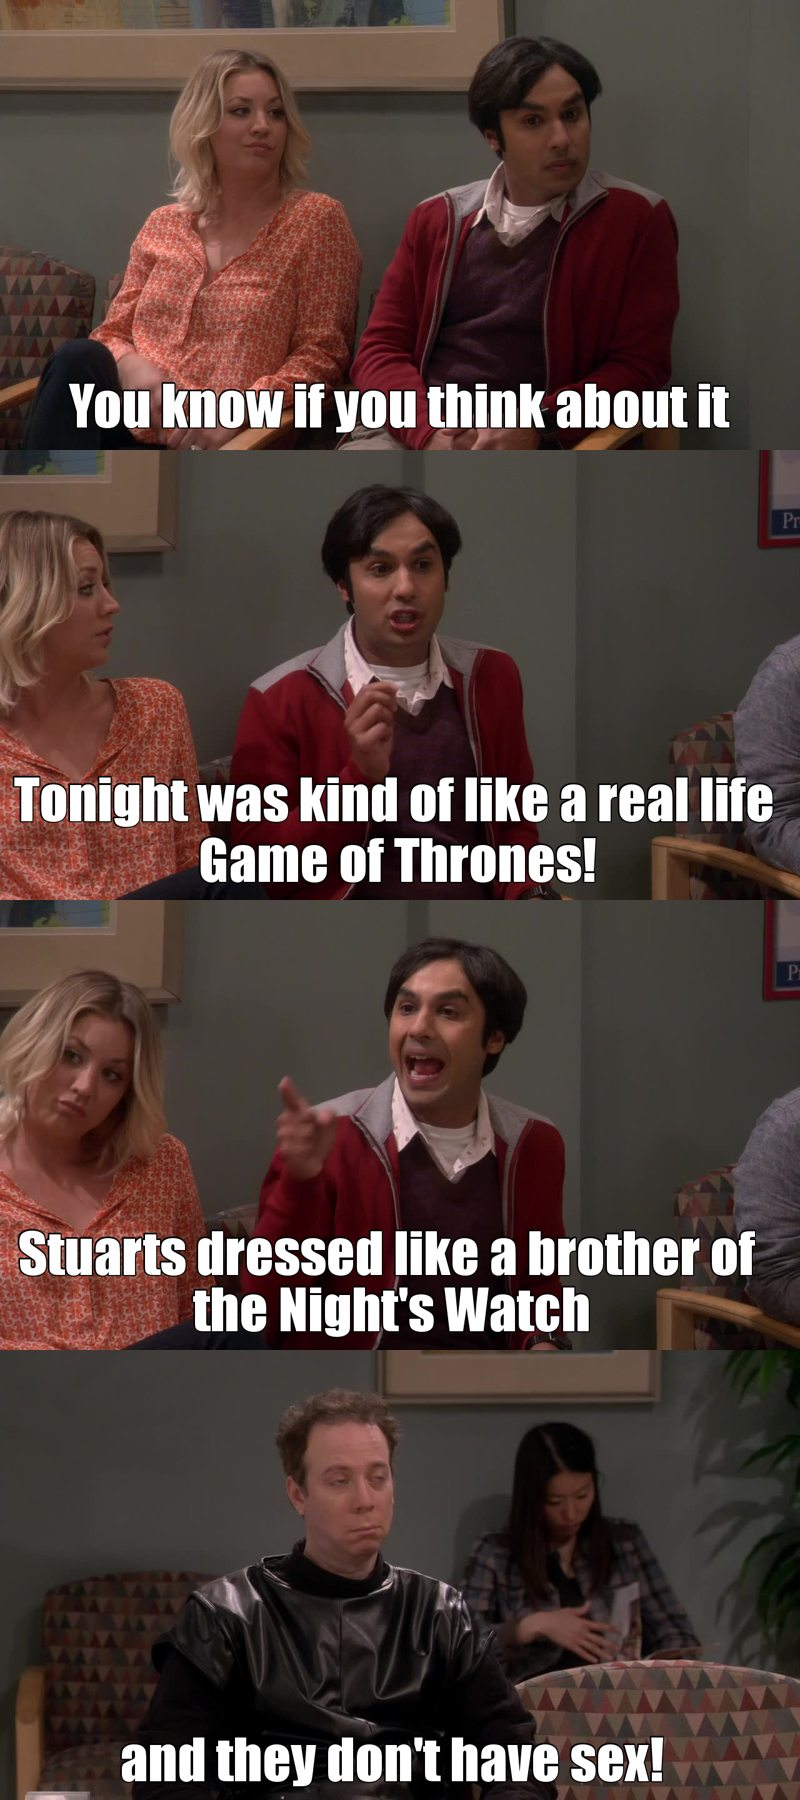 Loved the Game of Thrones references in this episode! 😂